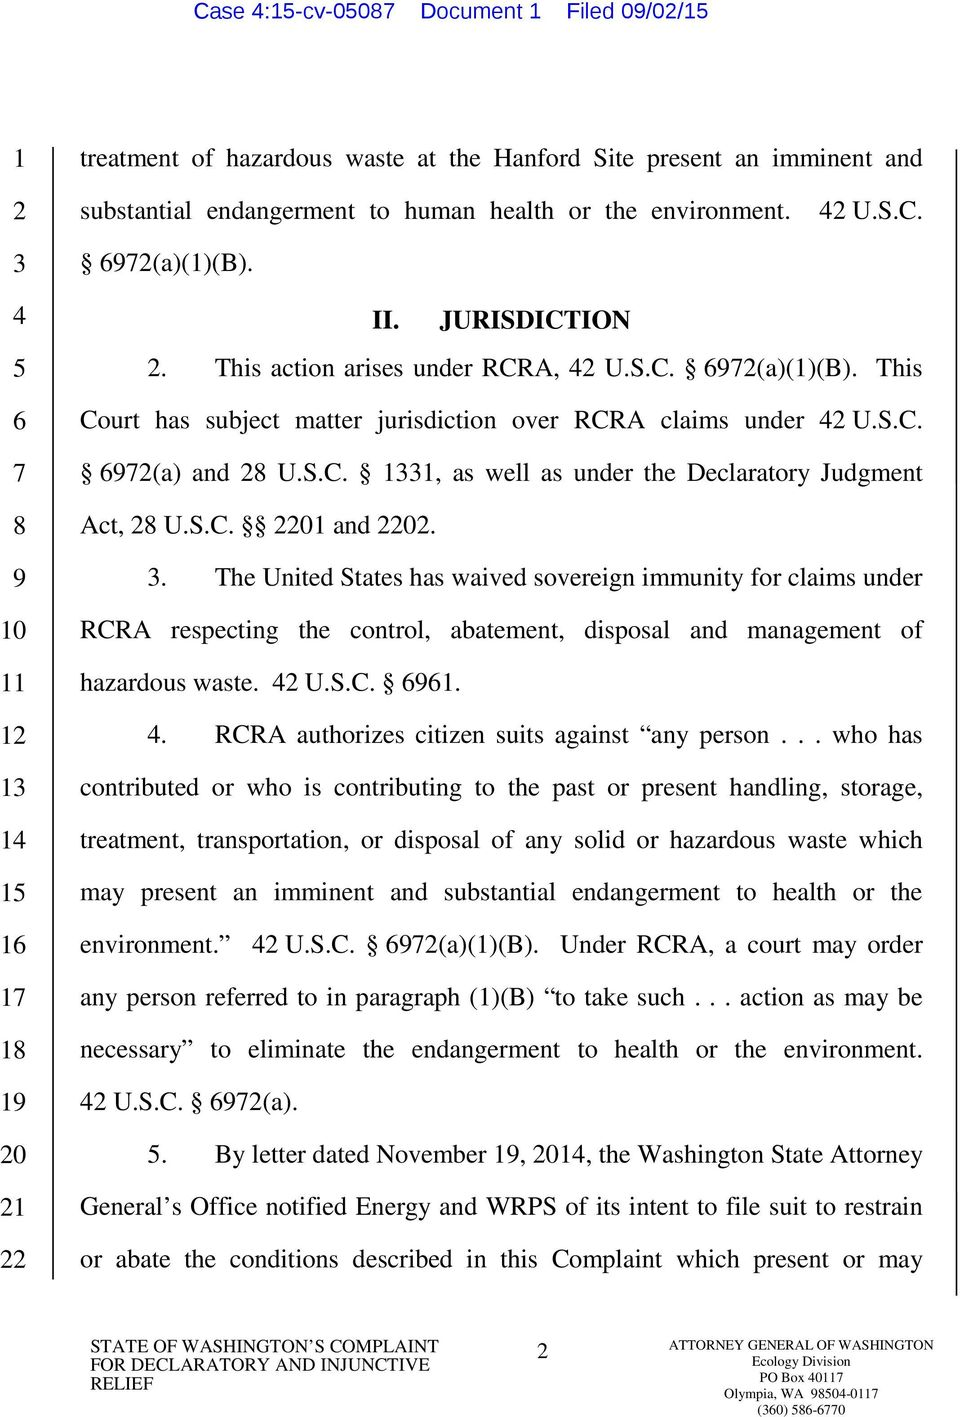 S.C. 0 and 0.. The United States has waived sovereign immunity for claims under RCRA respecting the control, abatement, disposal and management of hazardous waste. U.S.C... RCRA authorizes citizen suits against any person.